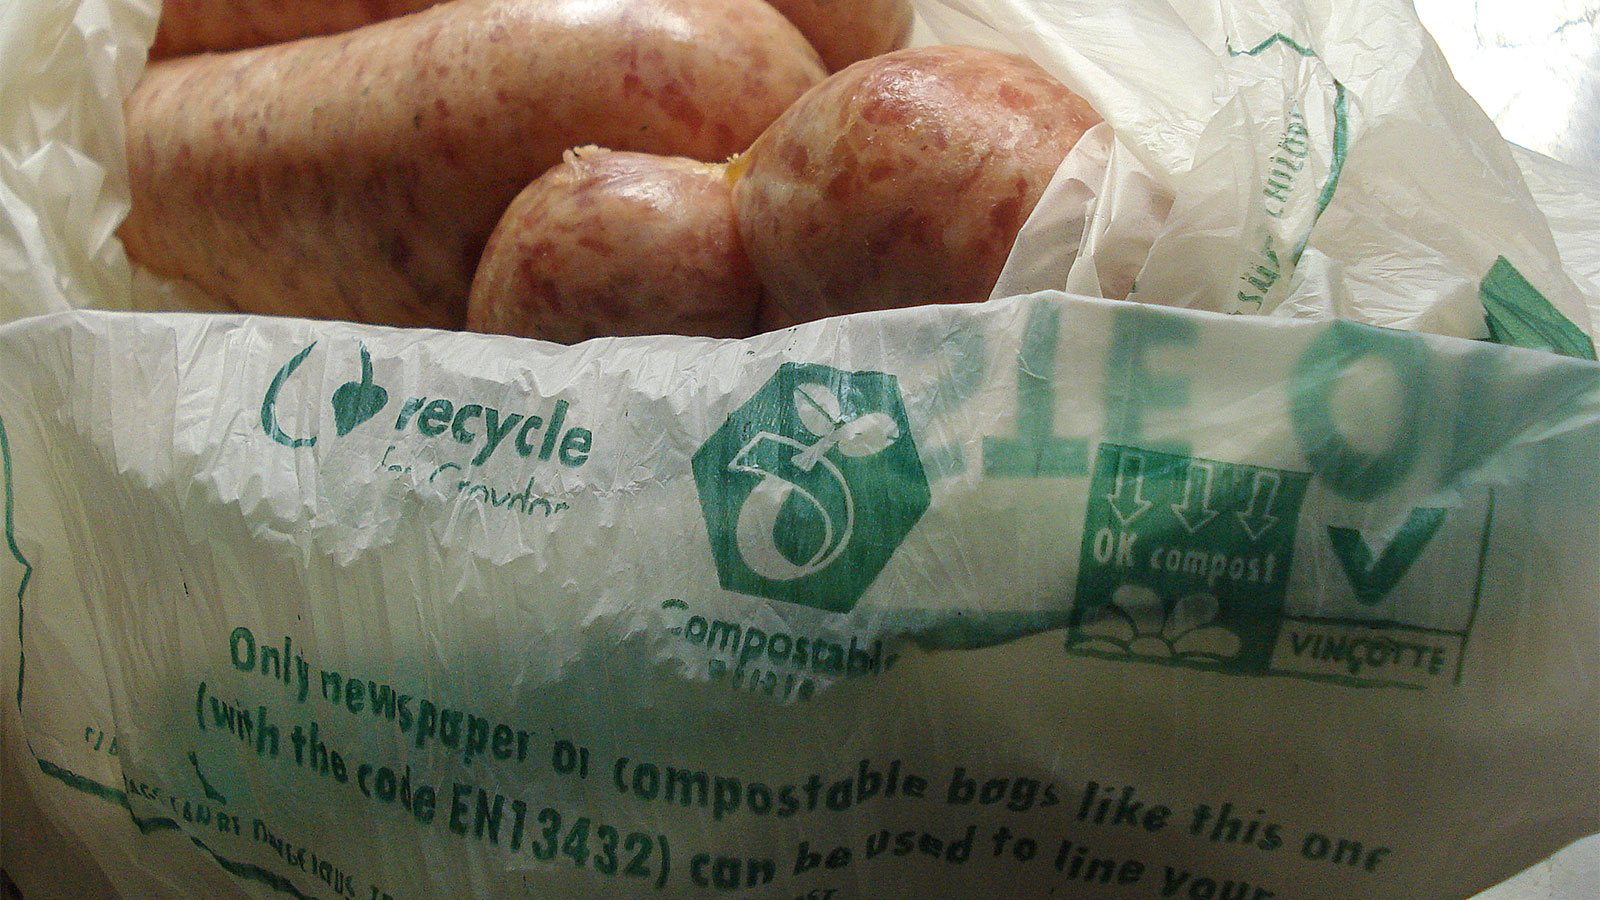 Compostable plastic bag filled with delicious sausages.